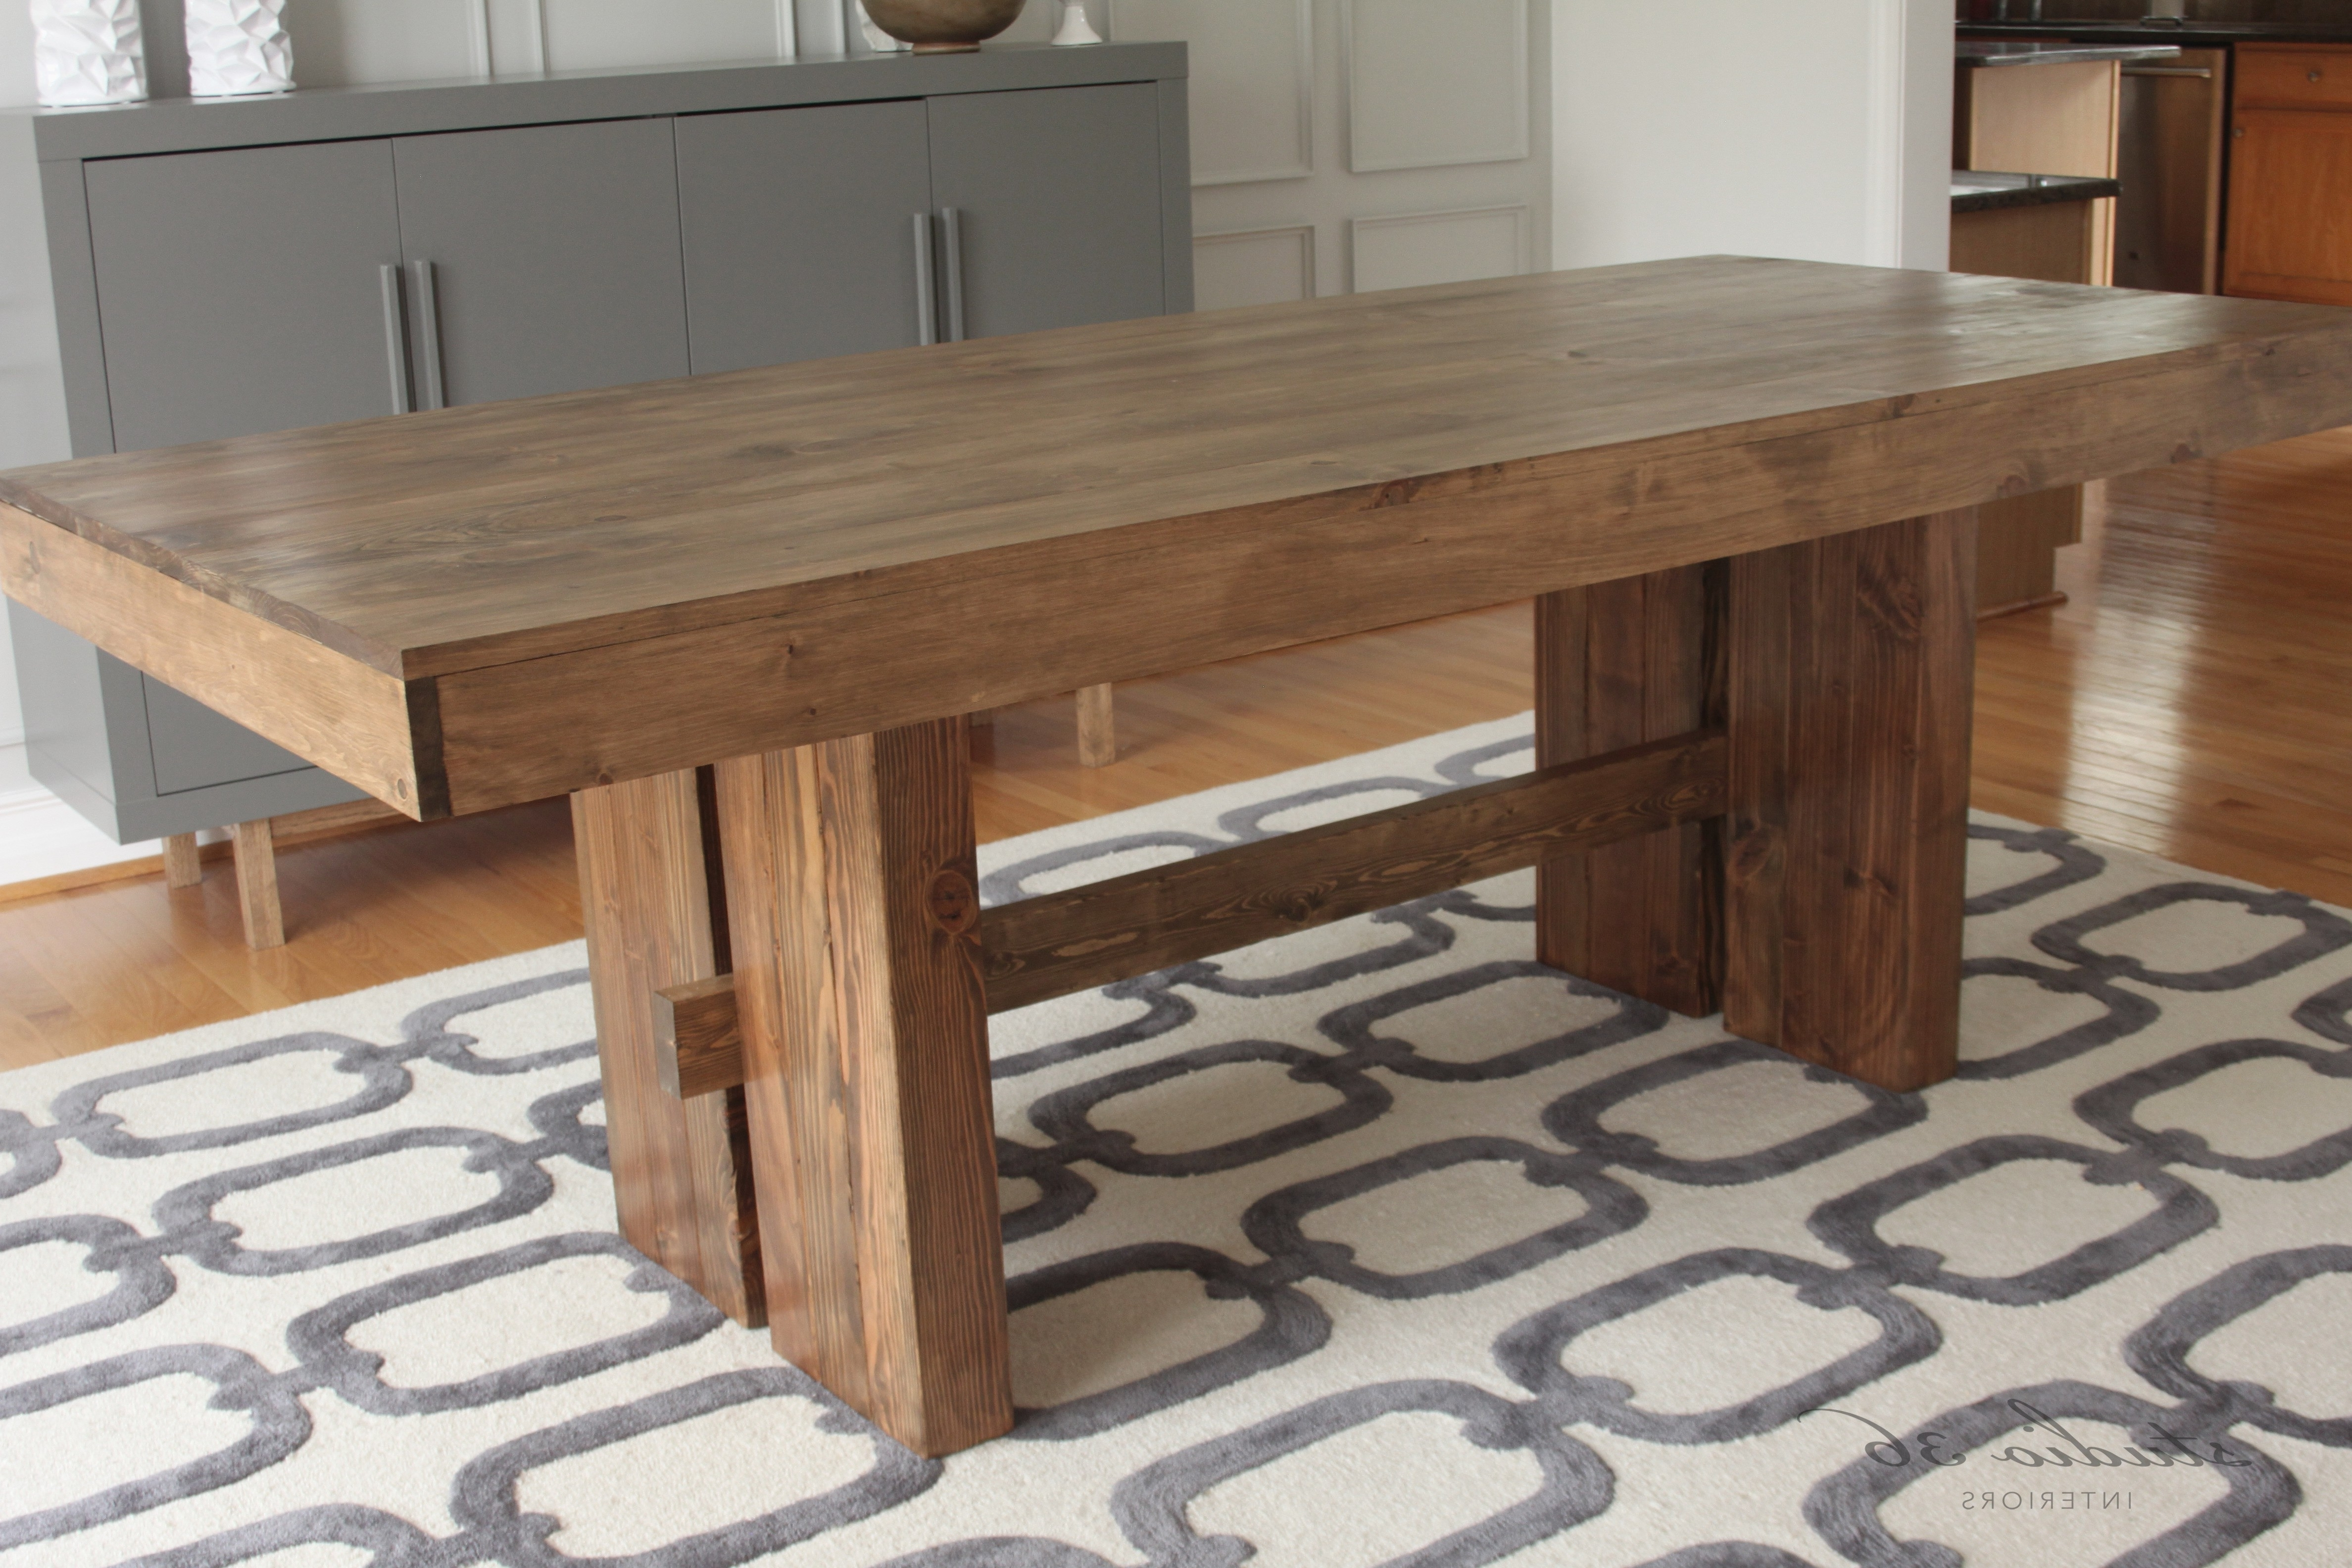 Trendy Farm Dining Table Inspirational Rustic Farmhouse Dining Table Simple Intended For Solid Wood Dining Tables (View 8 of 25)